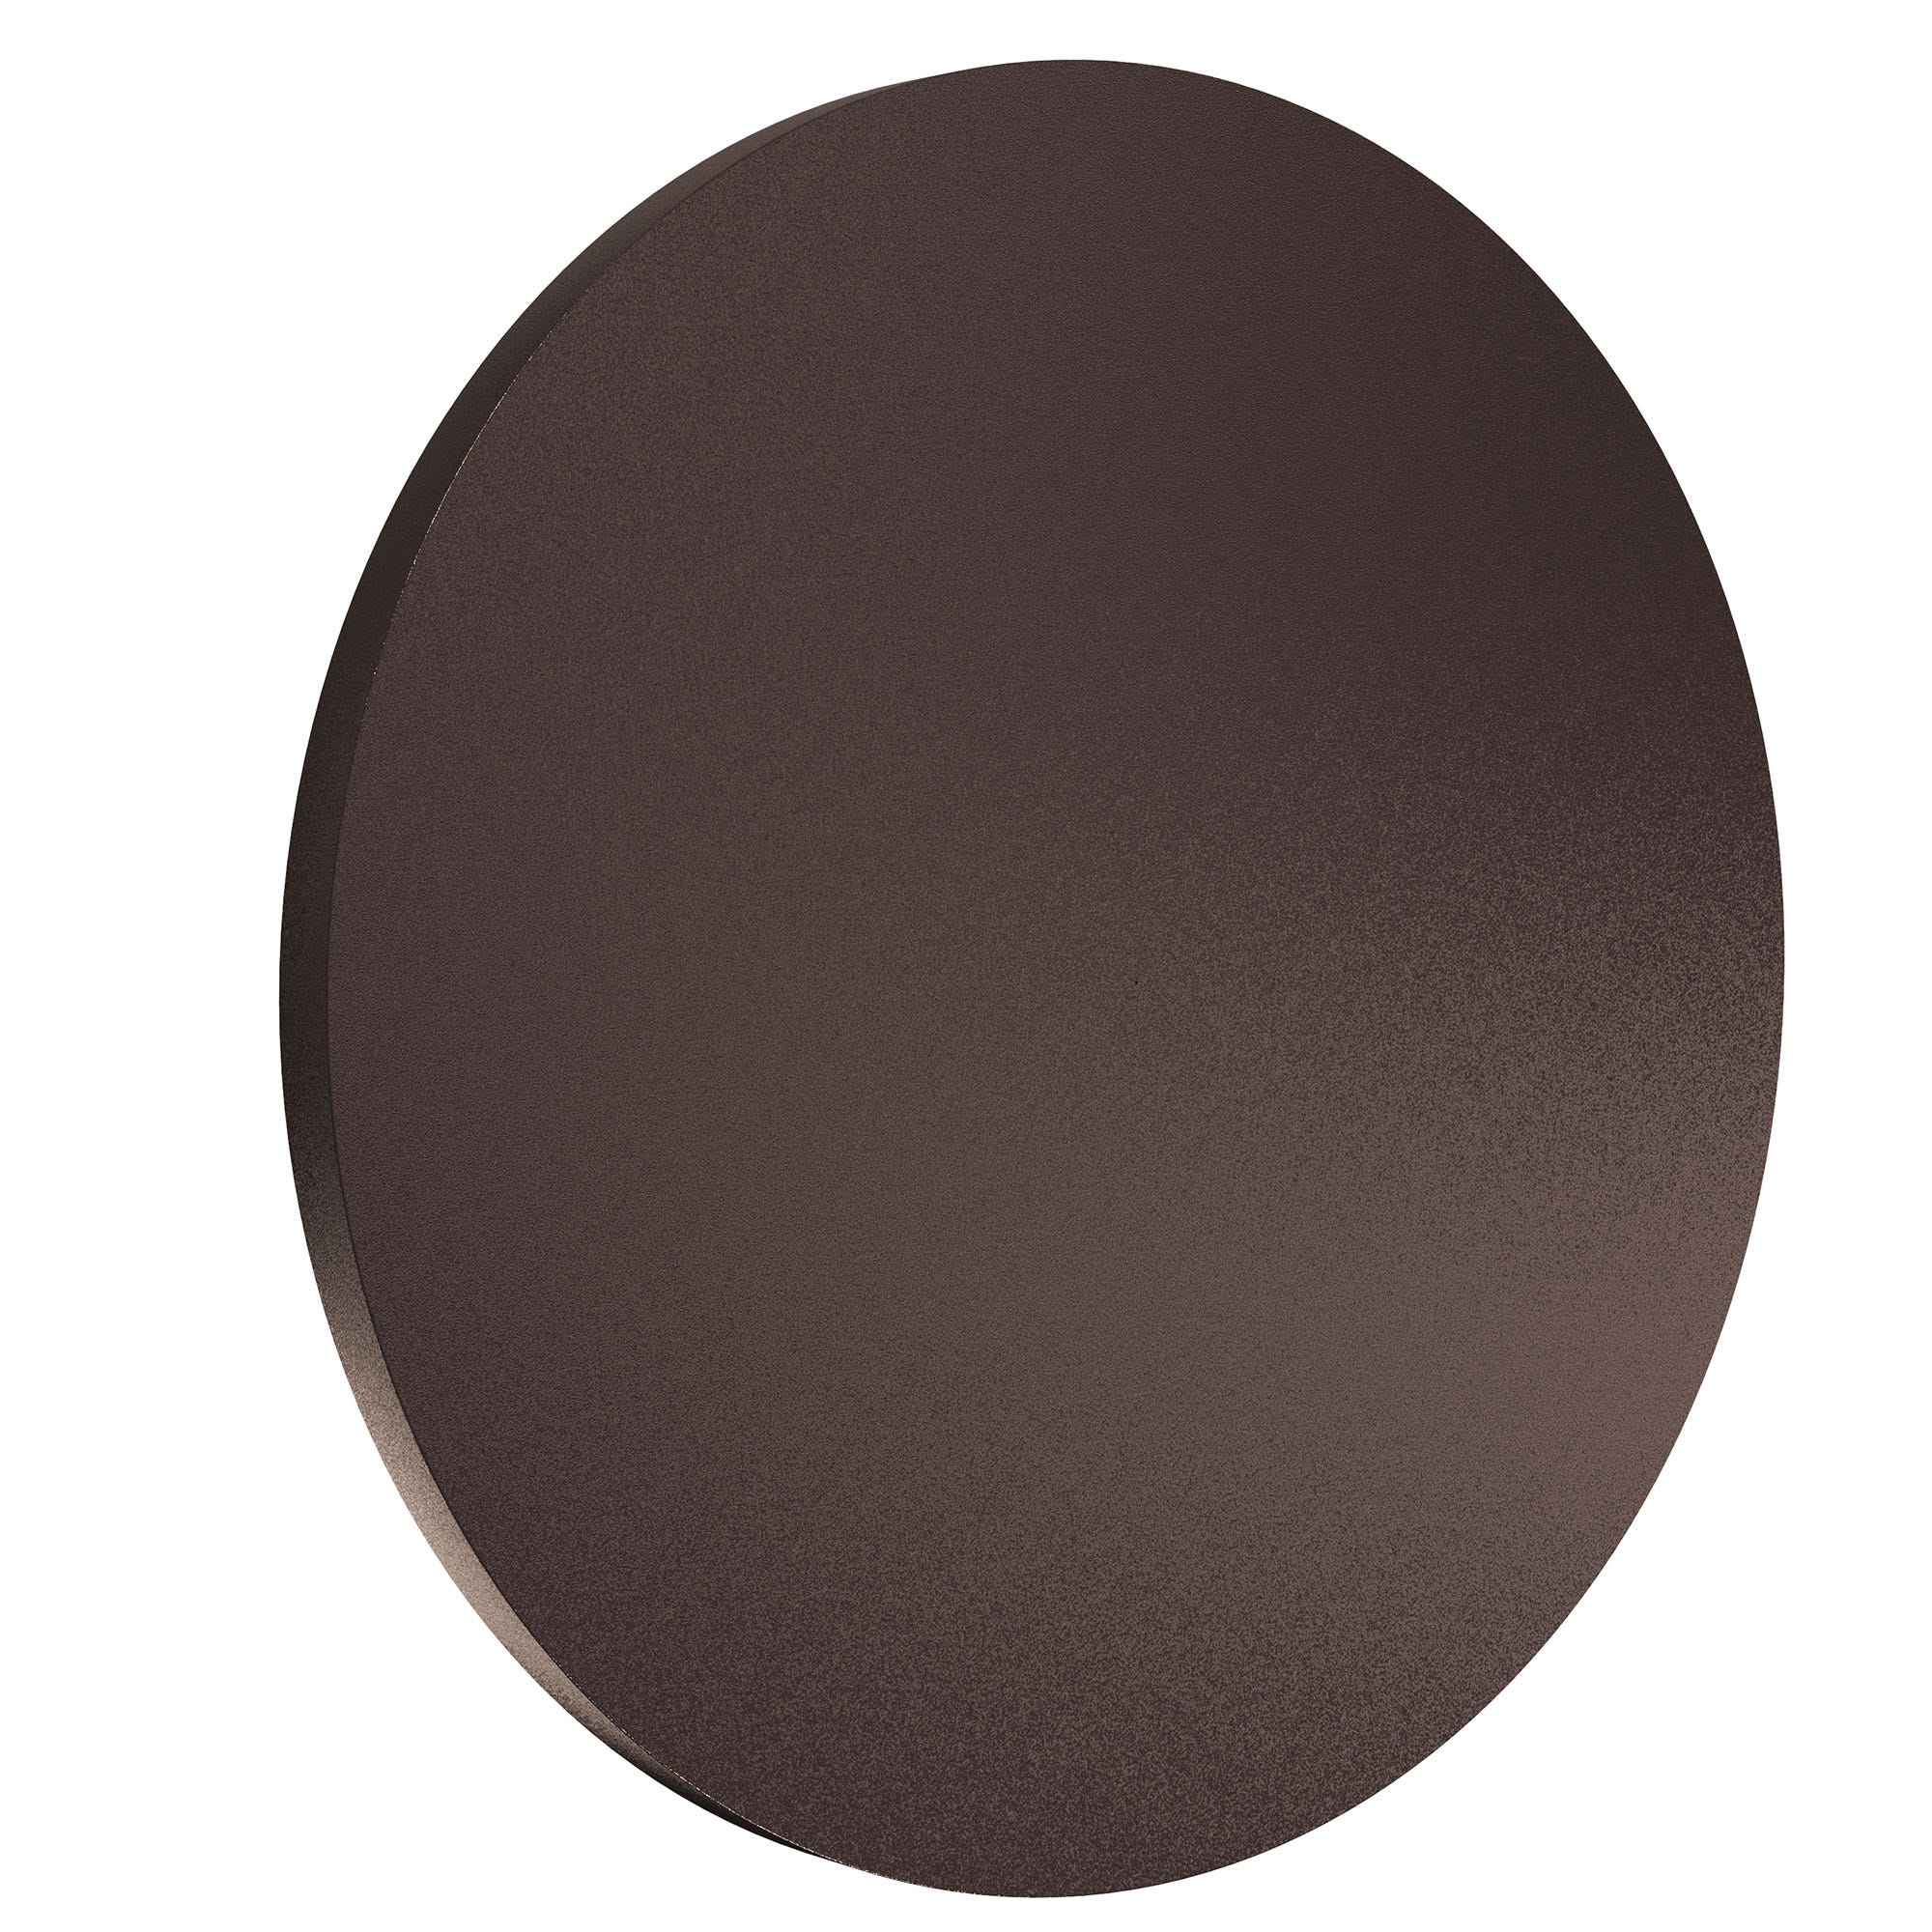 As Shown: Camouflage Wall Light Anthracite.